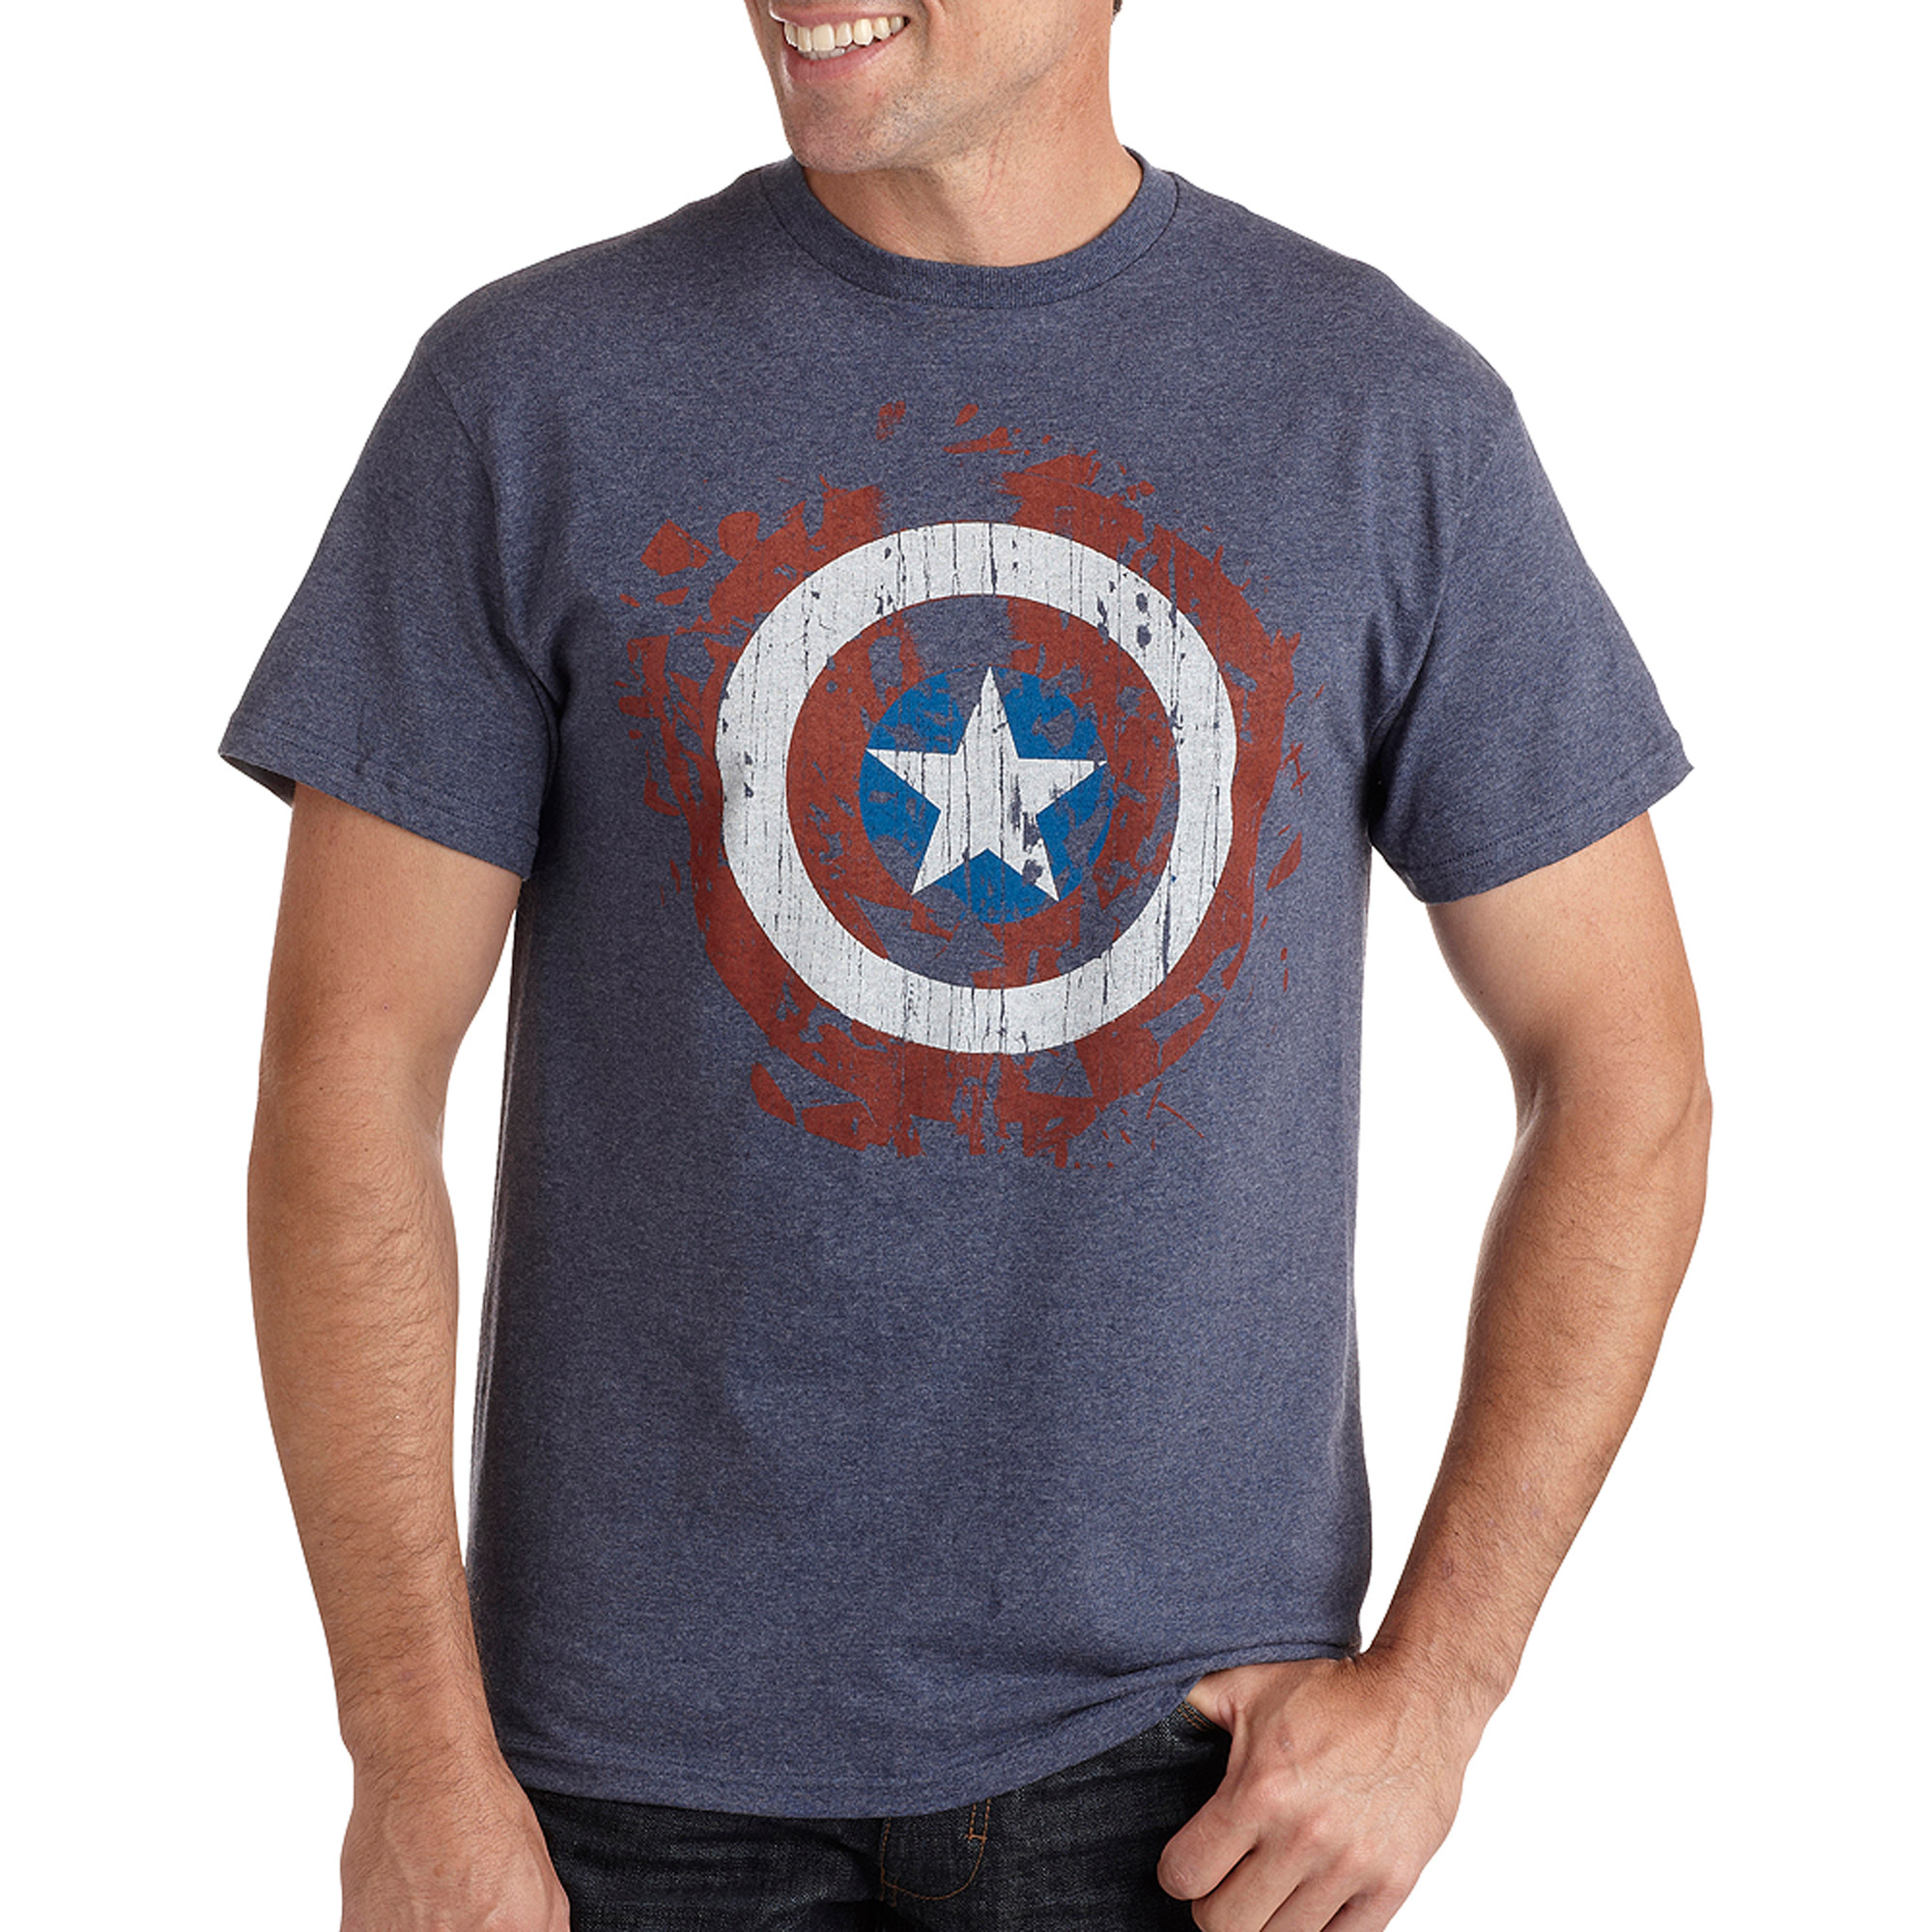 Captain Splatter Shield Big Men's Graphic Tee